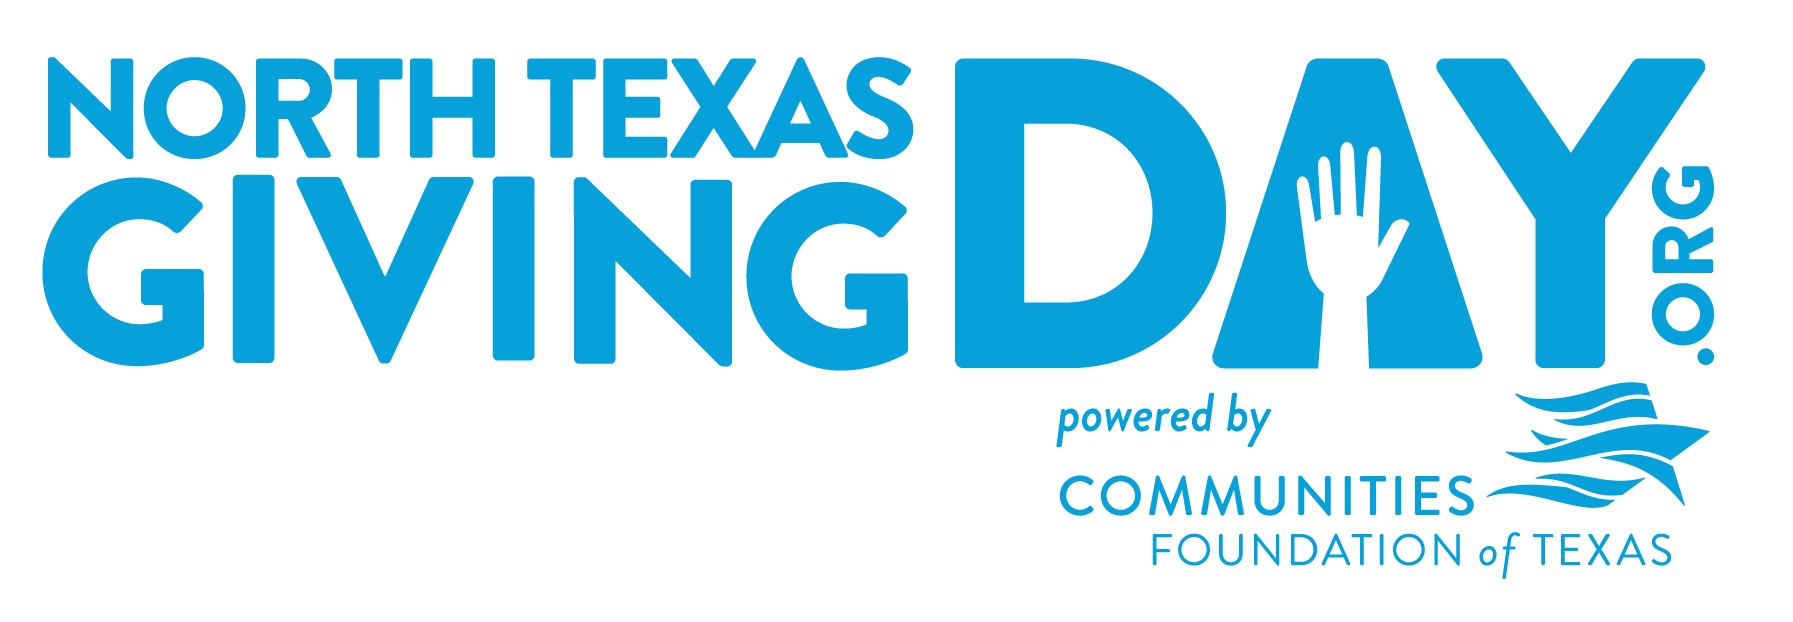 North Texas Giving Day Help Center home page